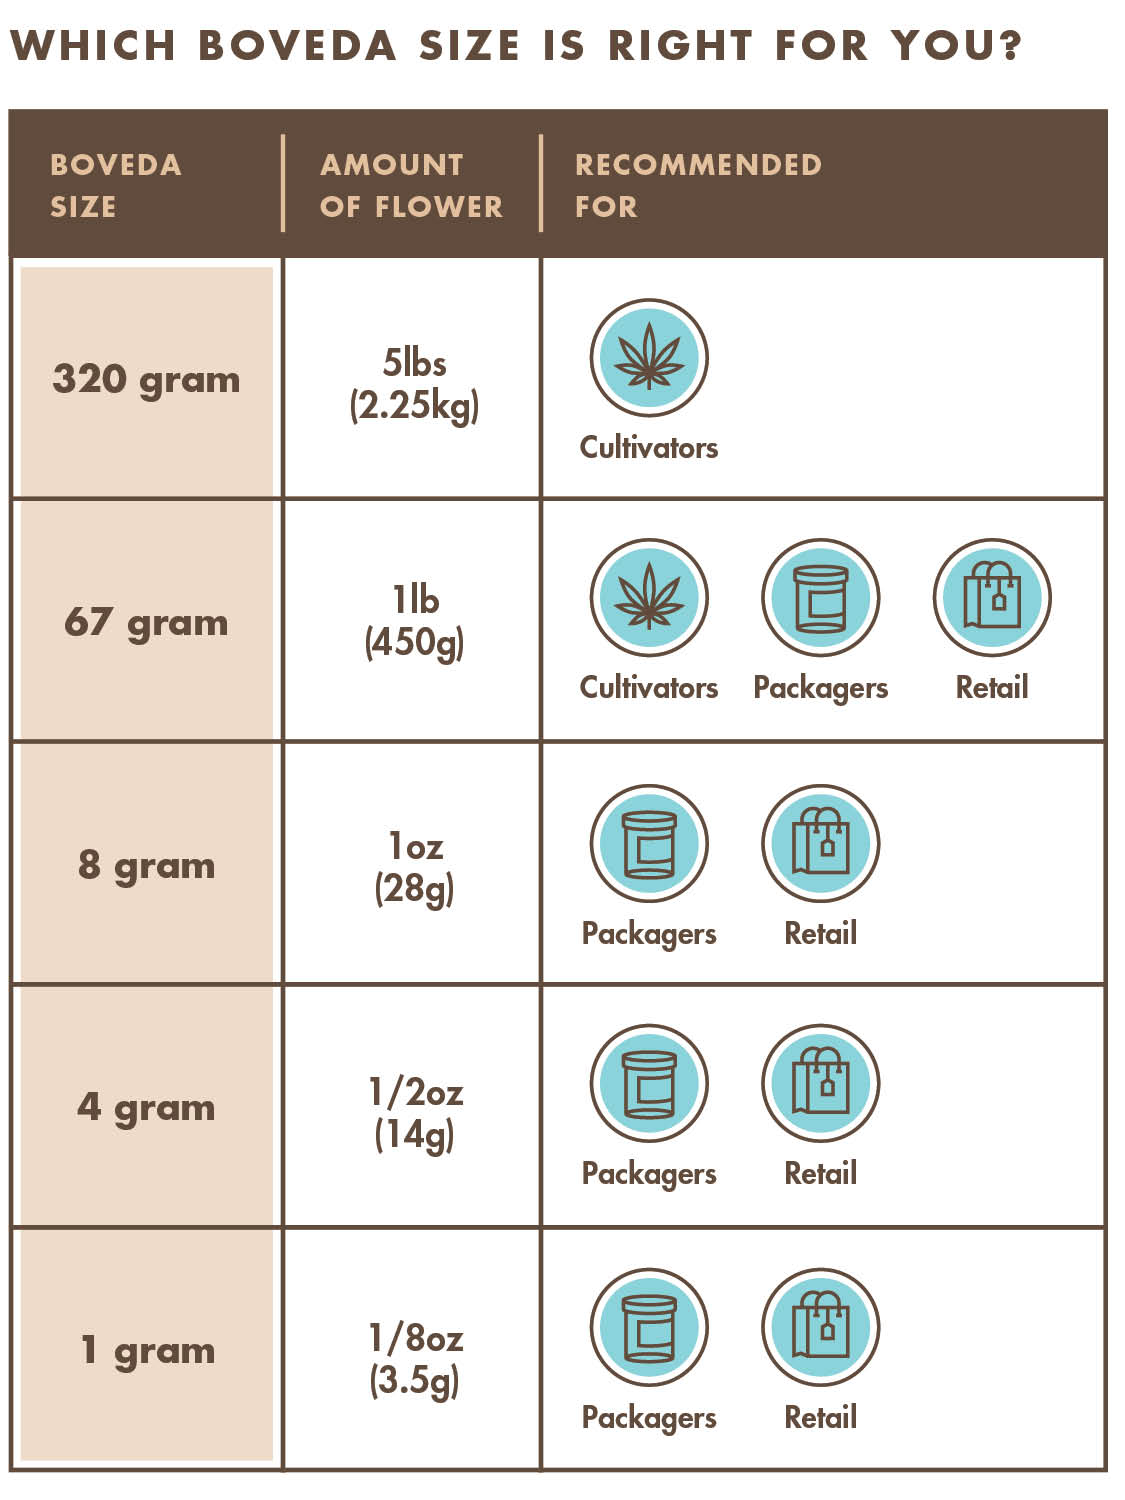 Which Boveda Size is Right for You?